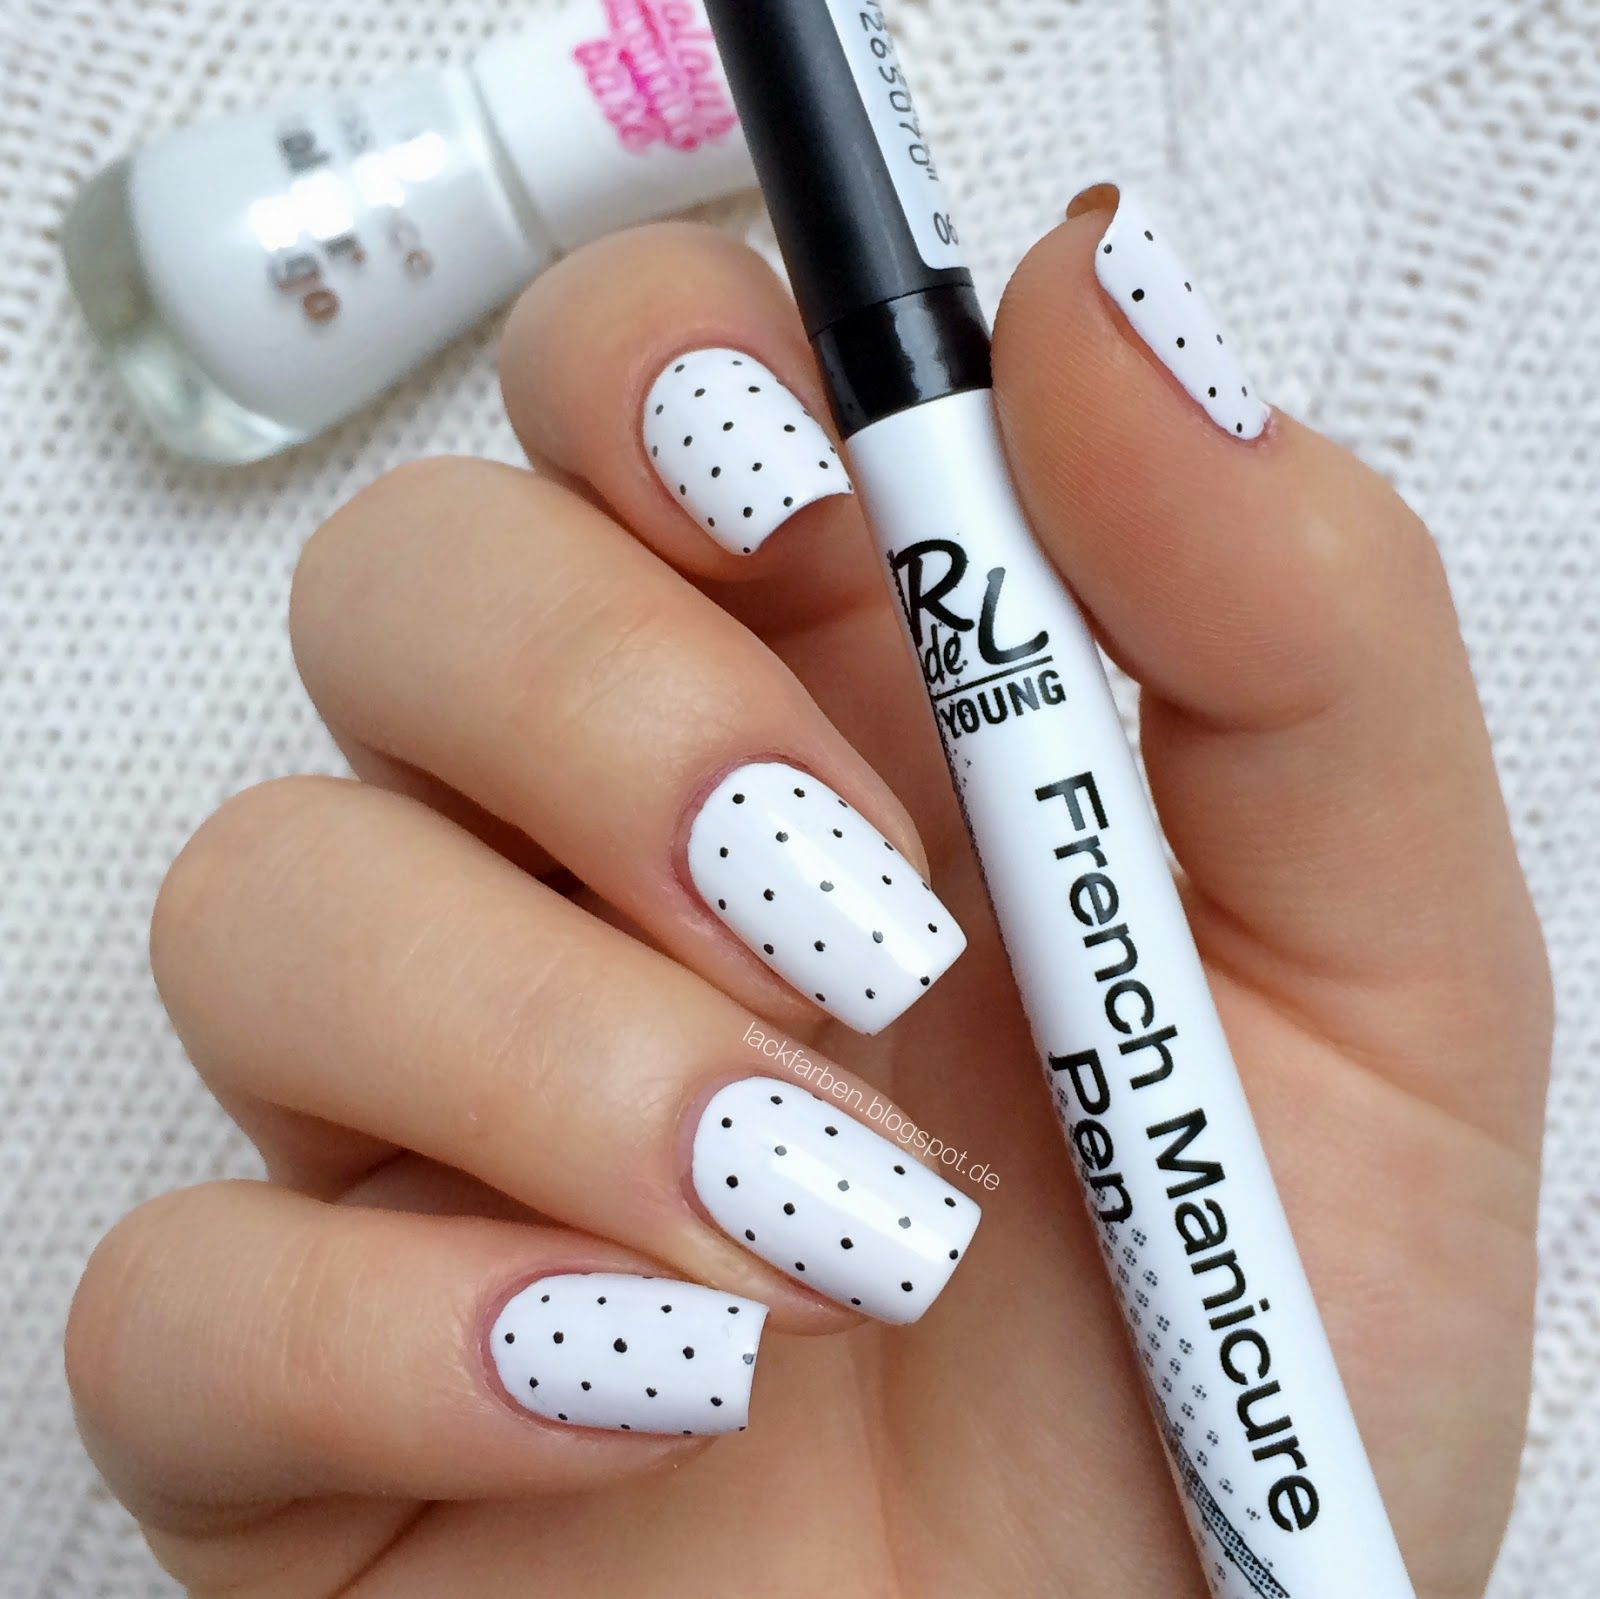 Essence - White Wild Ways RdeL Young French Manicure Pen @Lackfarben ...